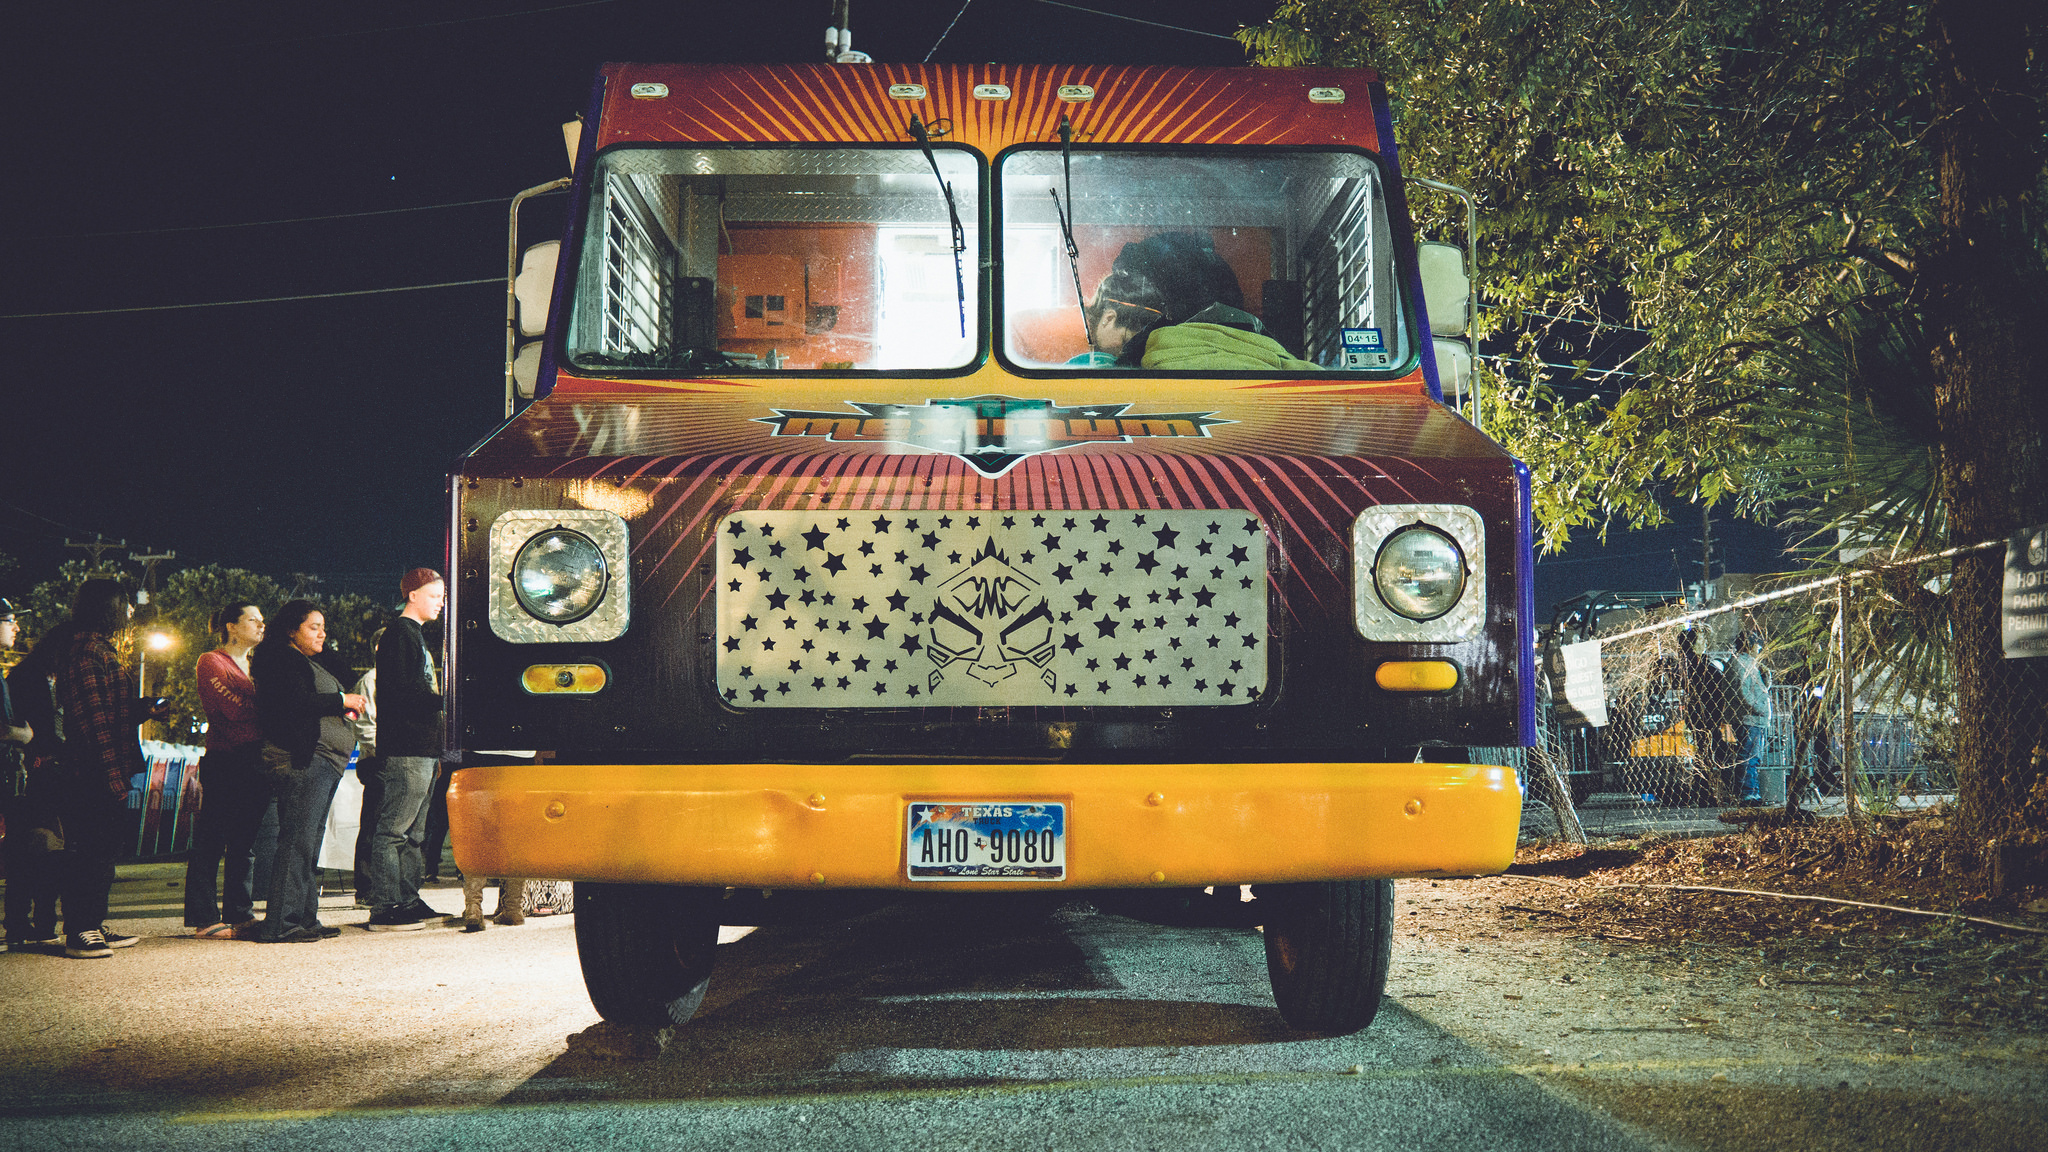 Do You Want To Start A Food Truck? Here's How